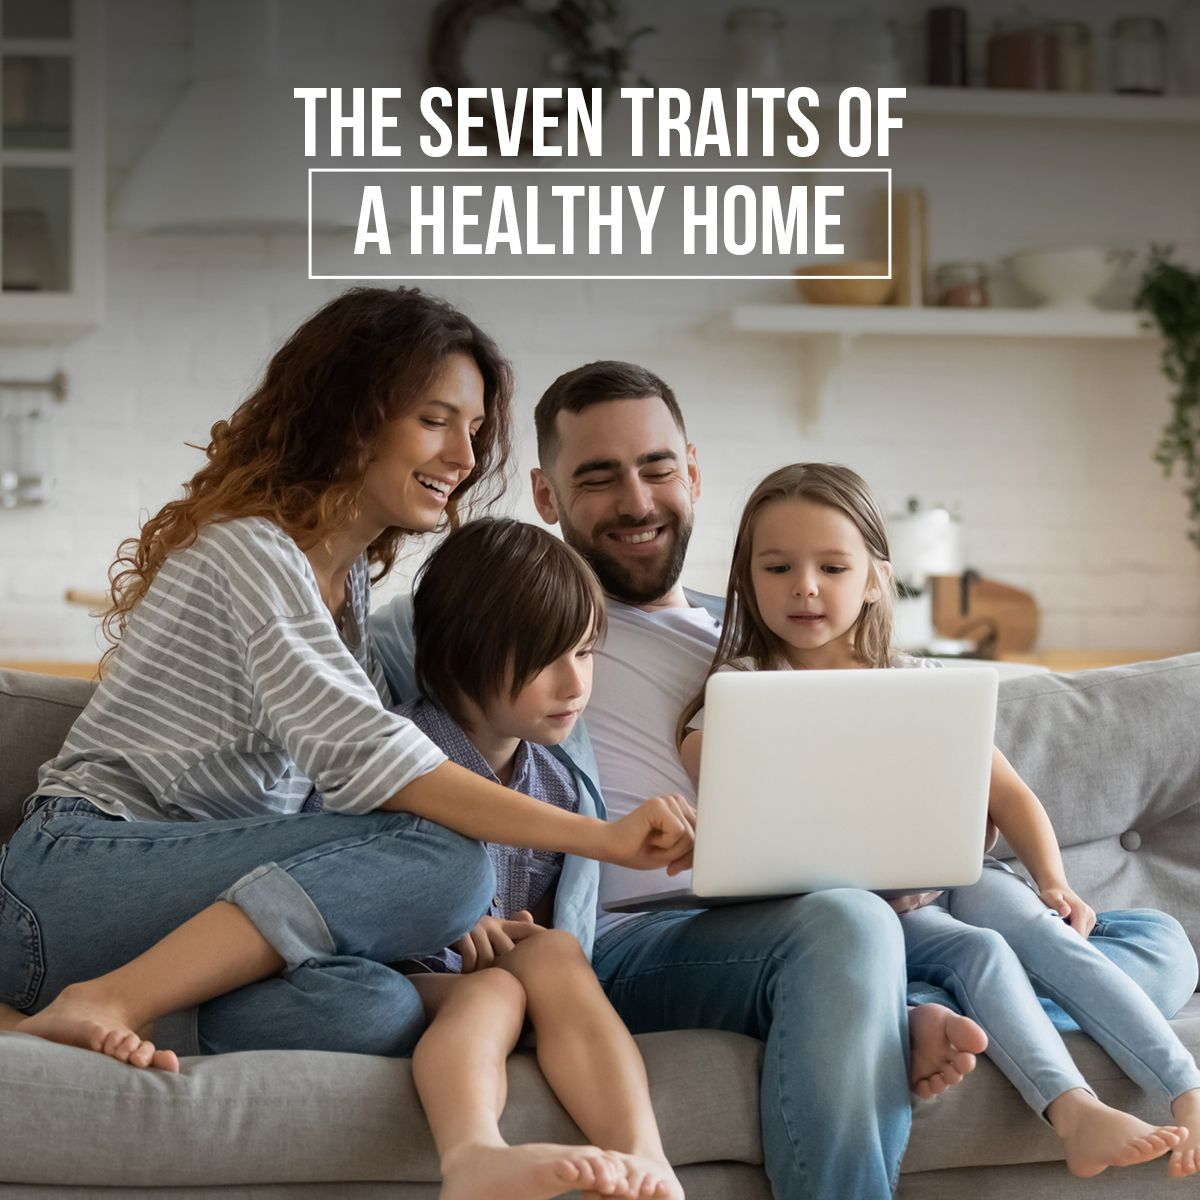 The Seven Traits of a Healthy Home